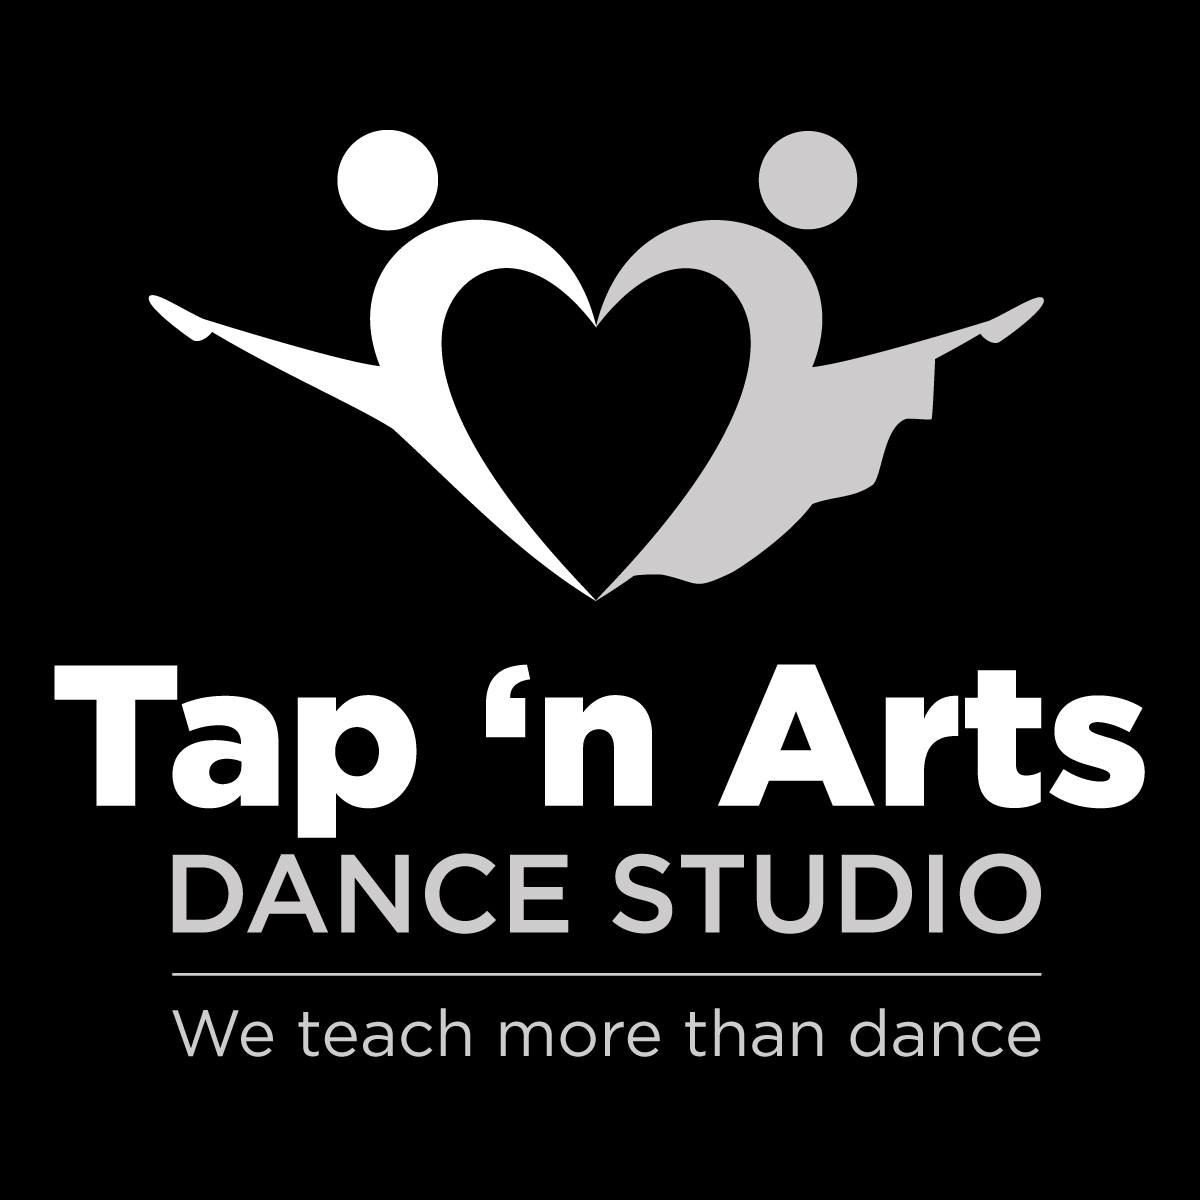 Tap 39 n arts dance studio of harrisburg pa harrisburg for Porte arts and dance studio